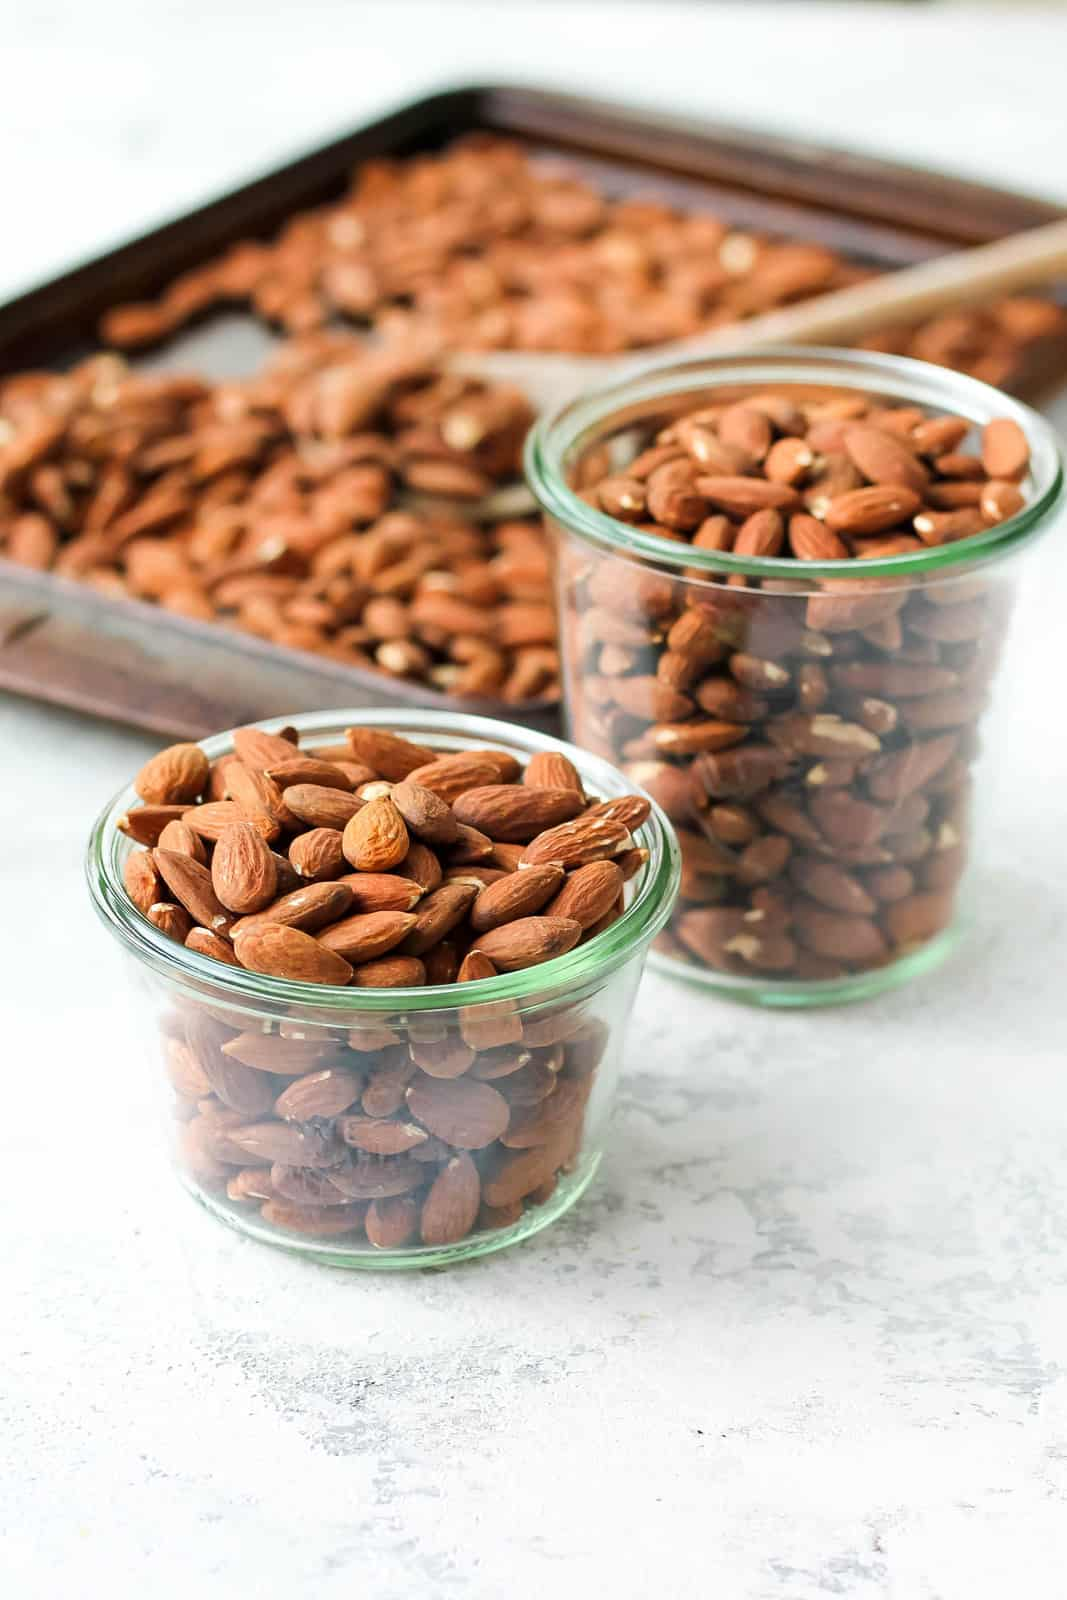 two glass jars of oven roasted almonds with a tray of toasted almonds in the background